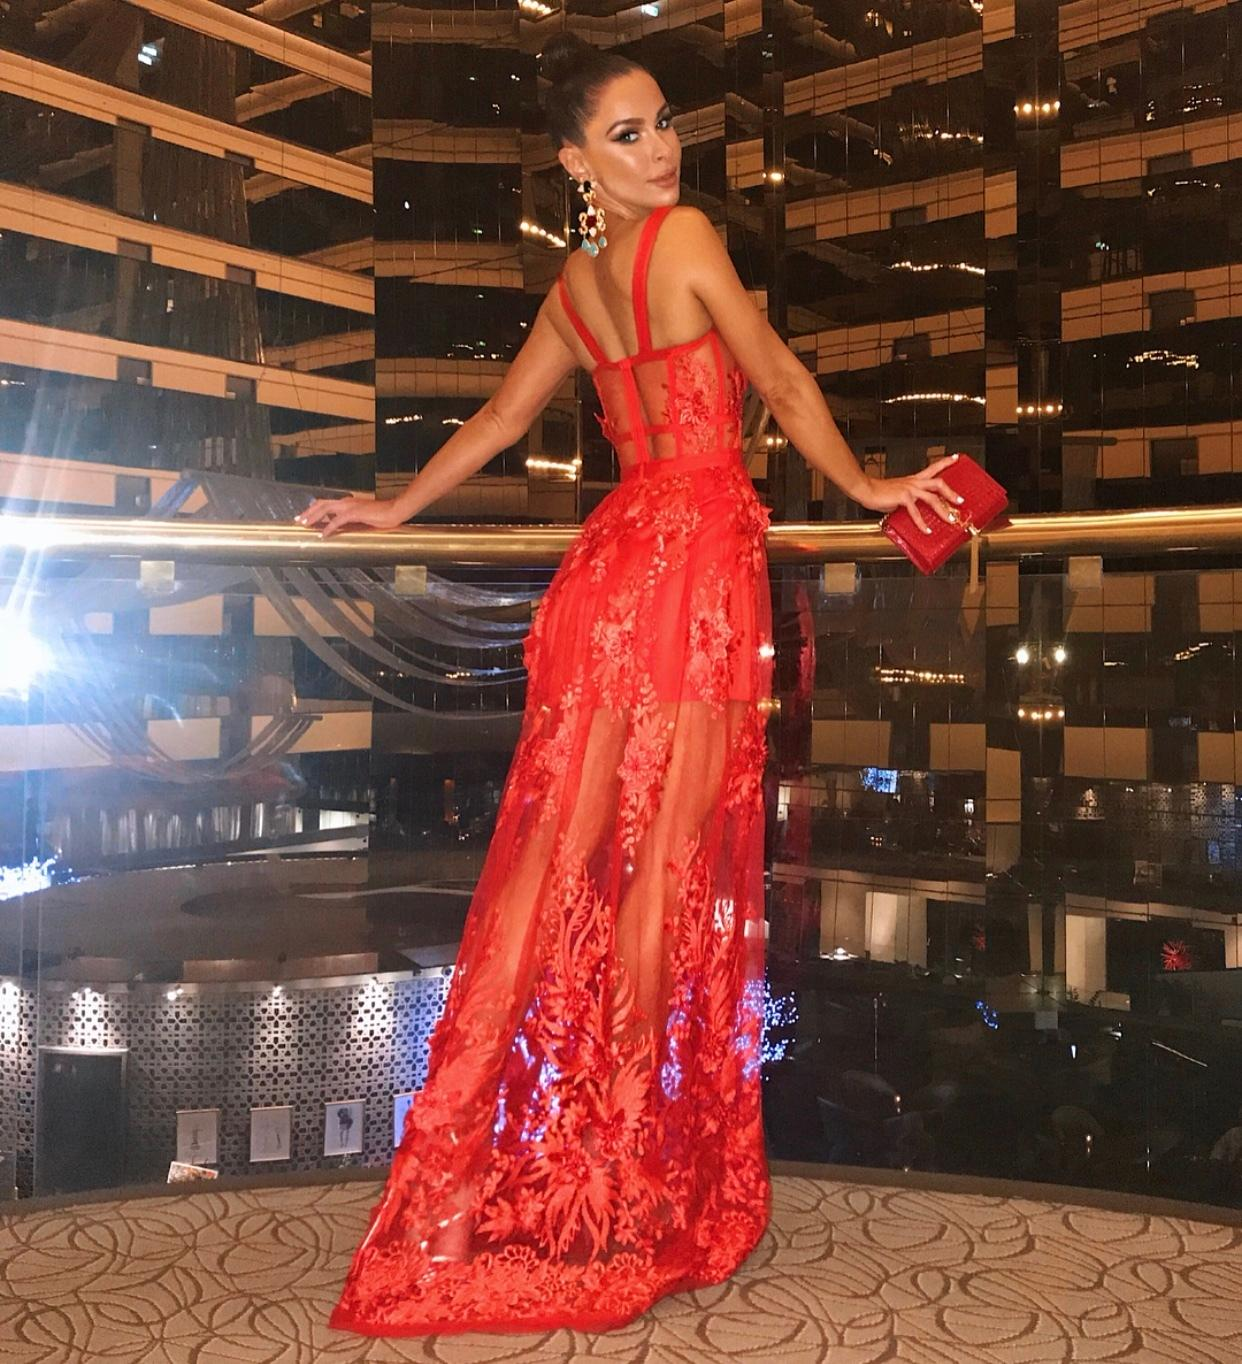 d29a34d856 Nicola Finetti Marisol red gown size 10